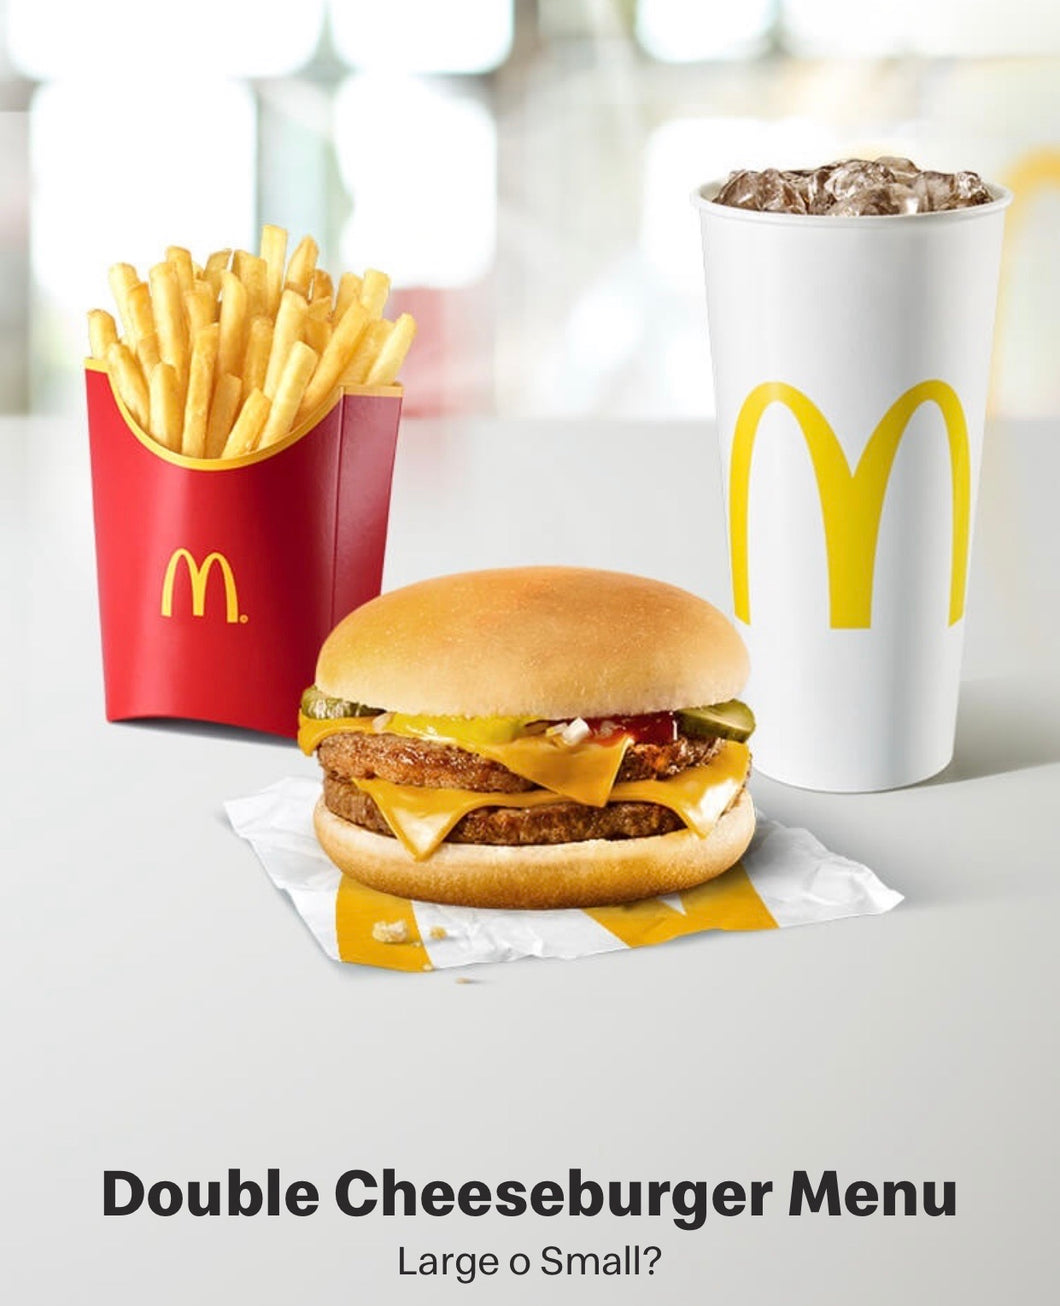 Double Cheeseburger Menu H24 - FOR ME H24